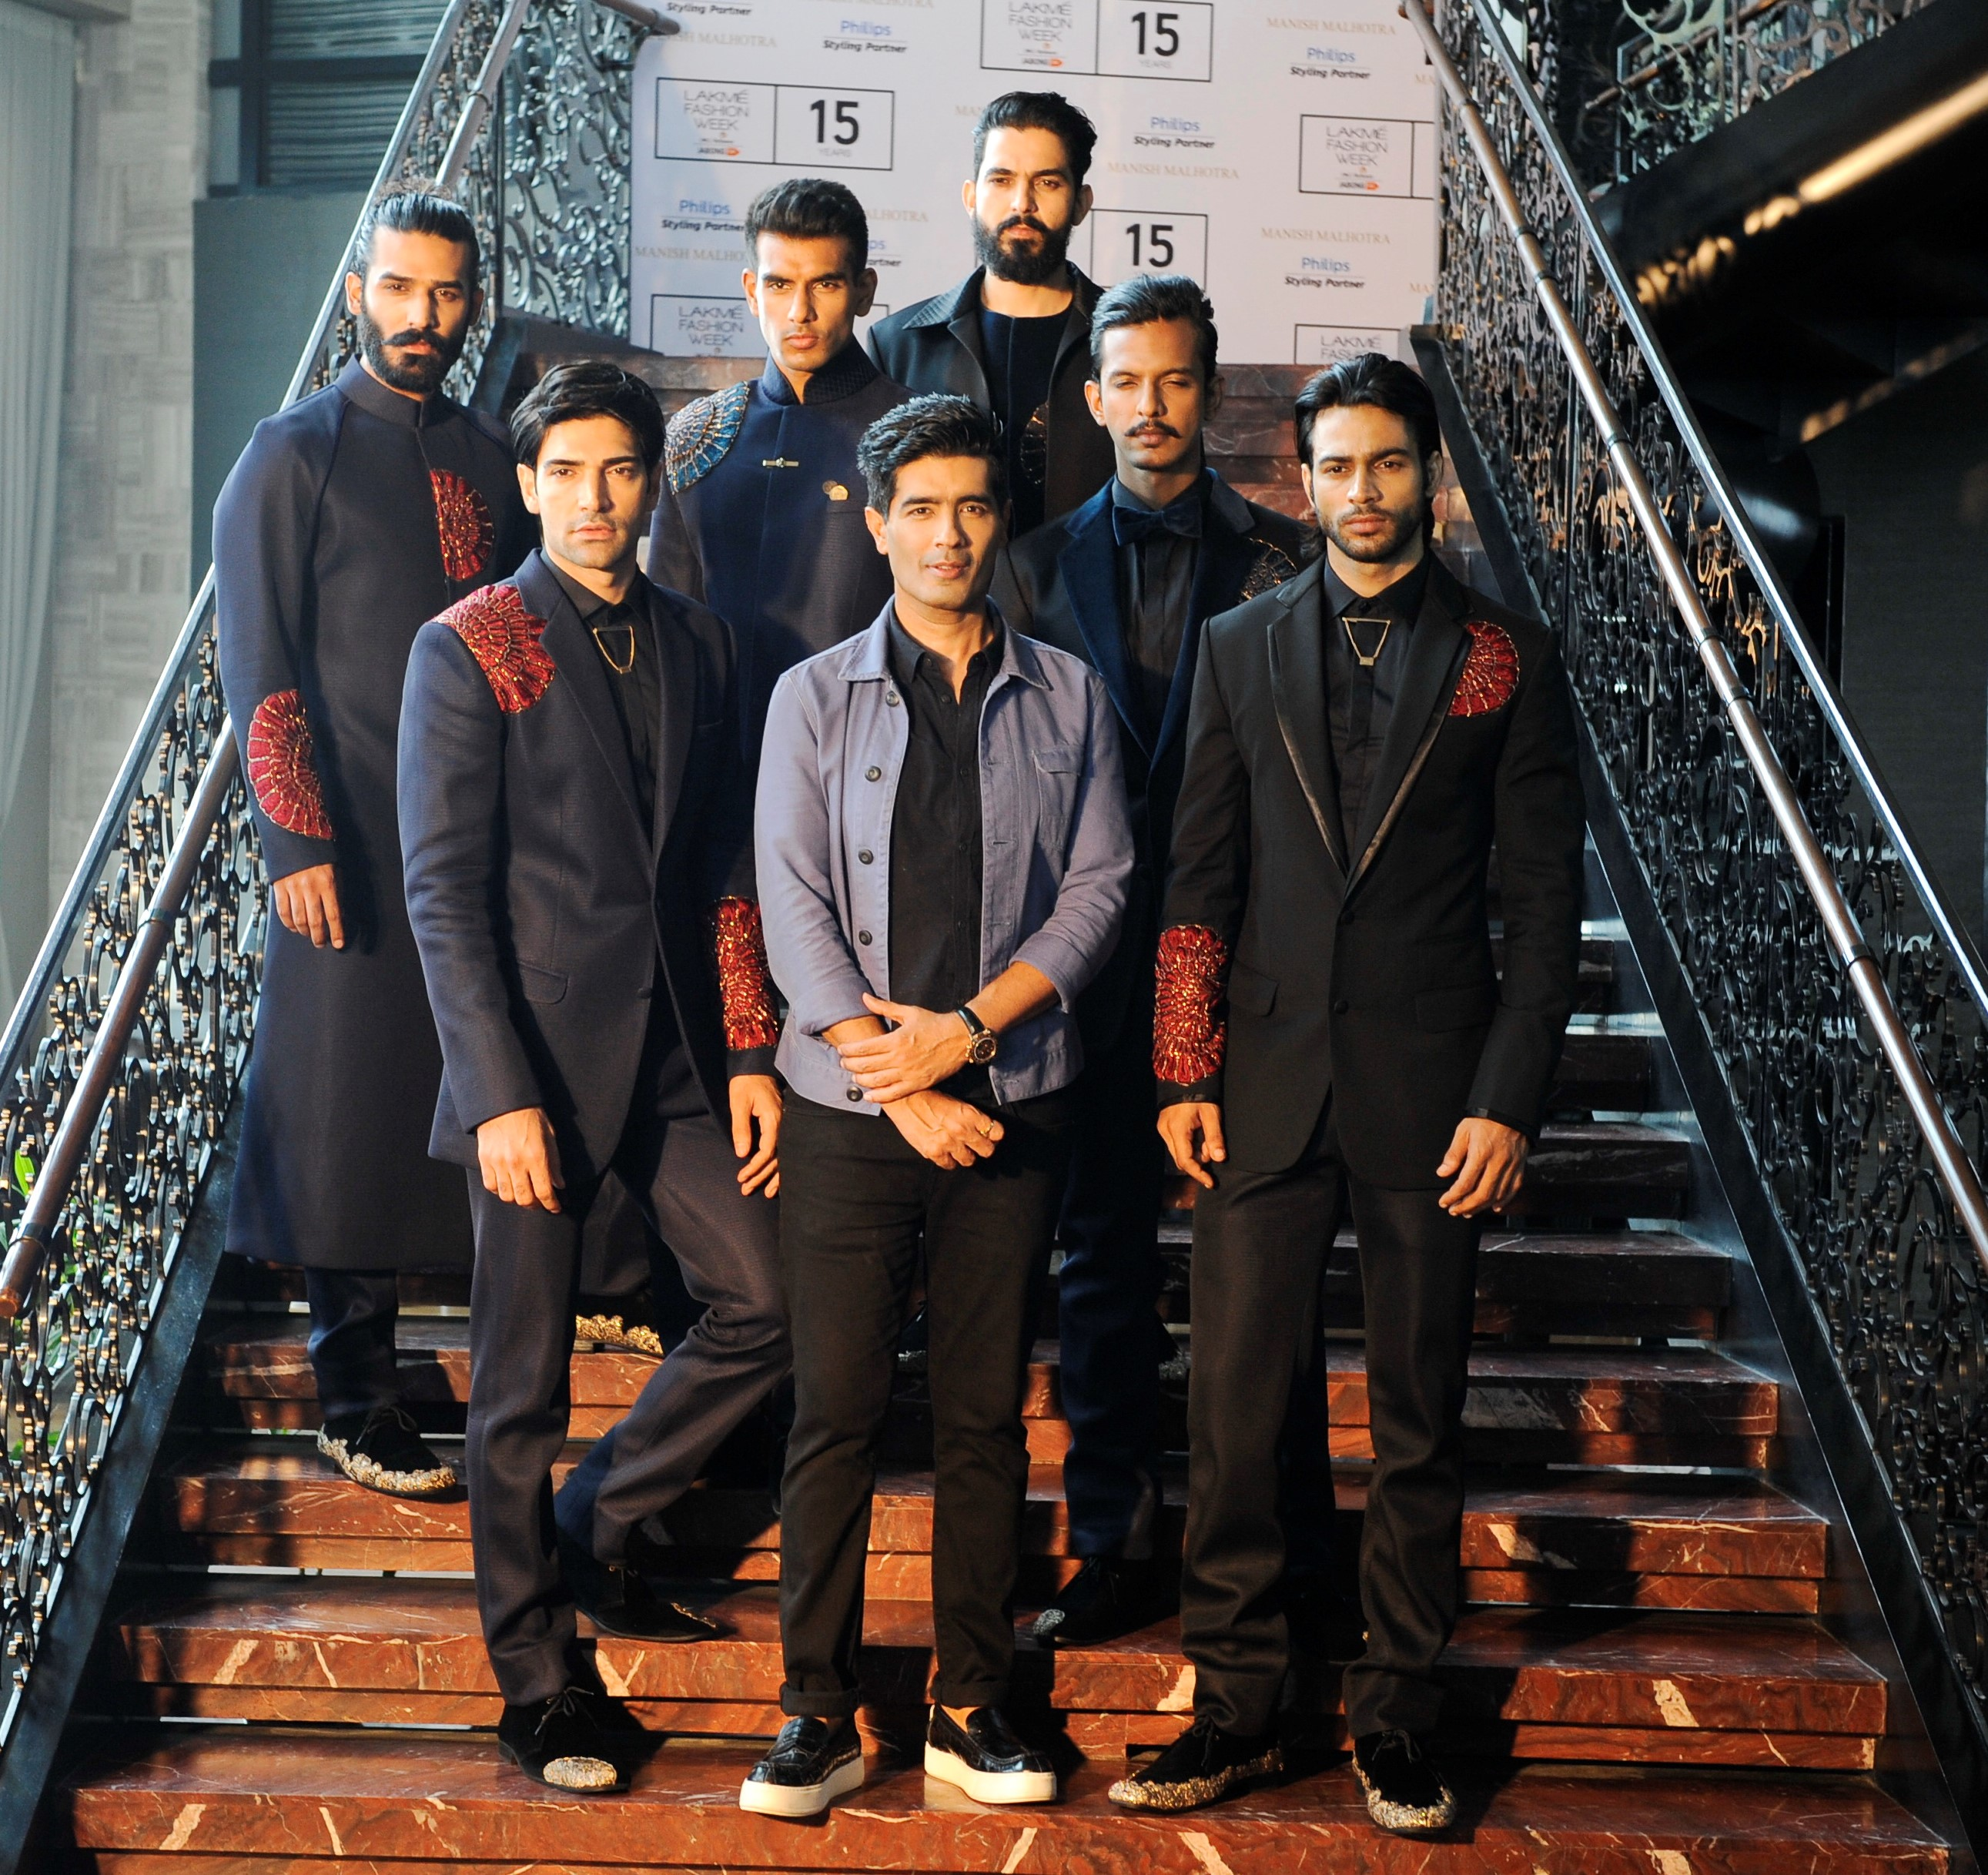 Manish Malhotra previews his LFW WF collection - The Gentlemen's Club